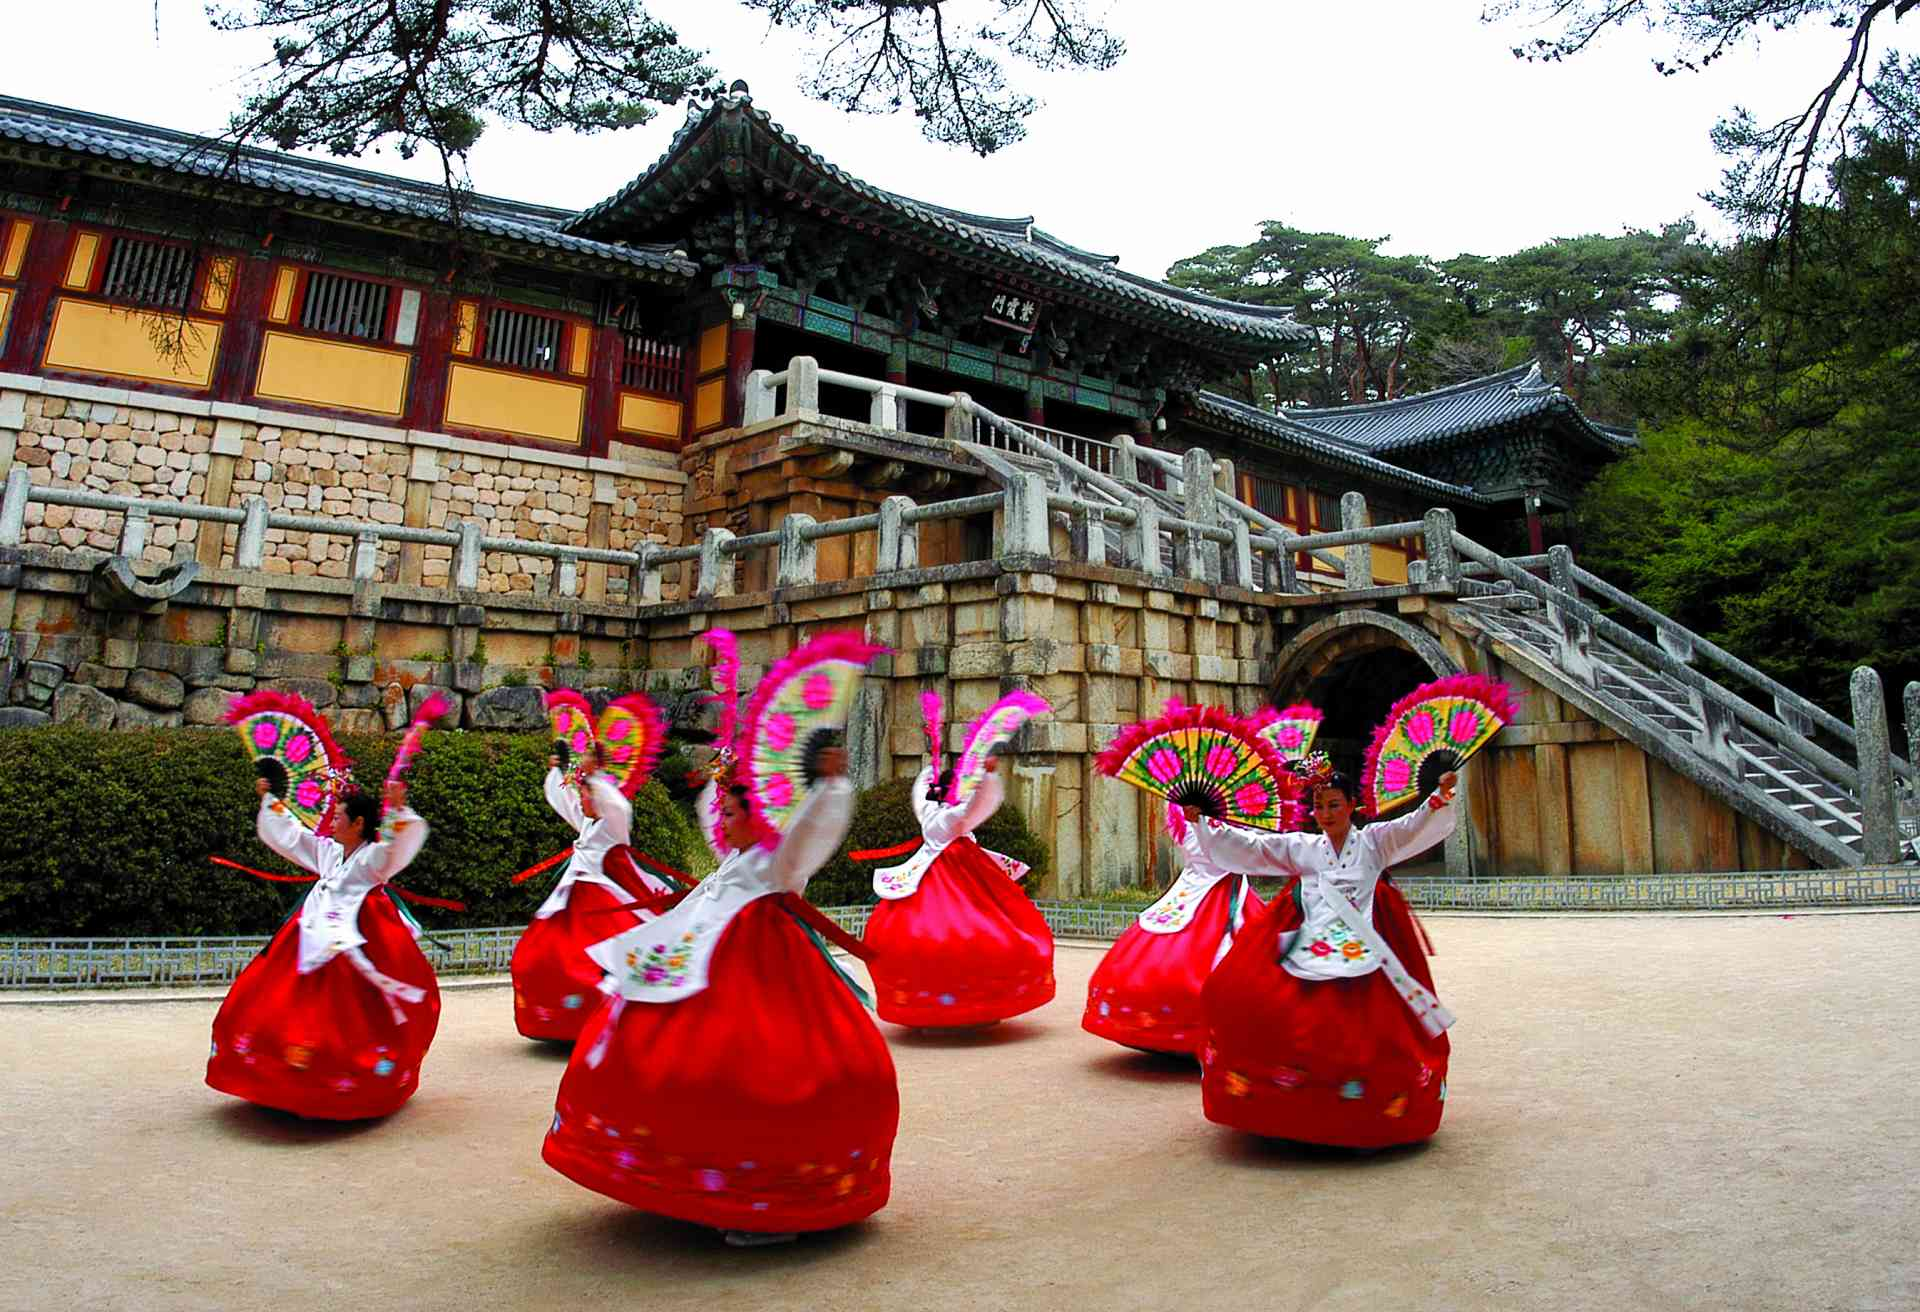 Fan Dance at Bulguksa Temple, South Korea by Korea Tourism Organization